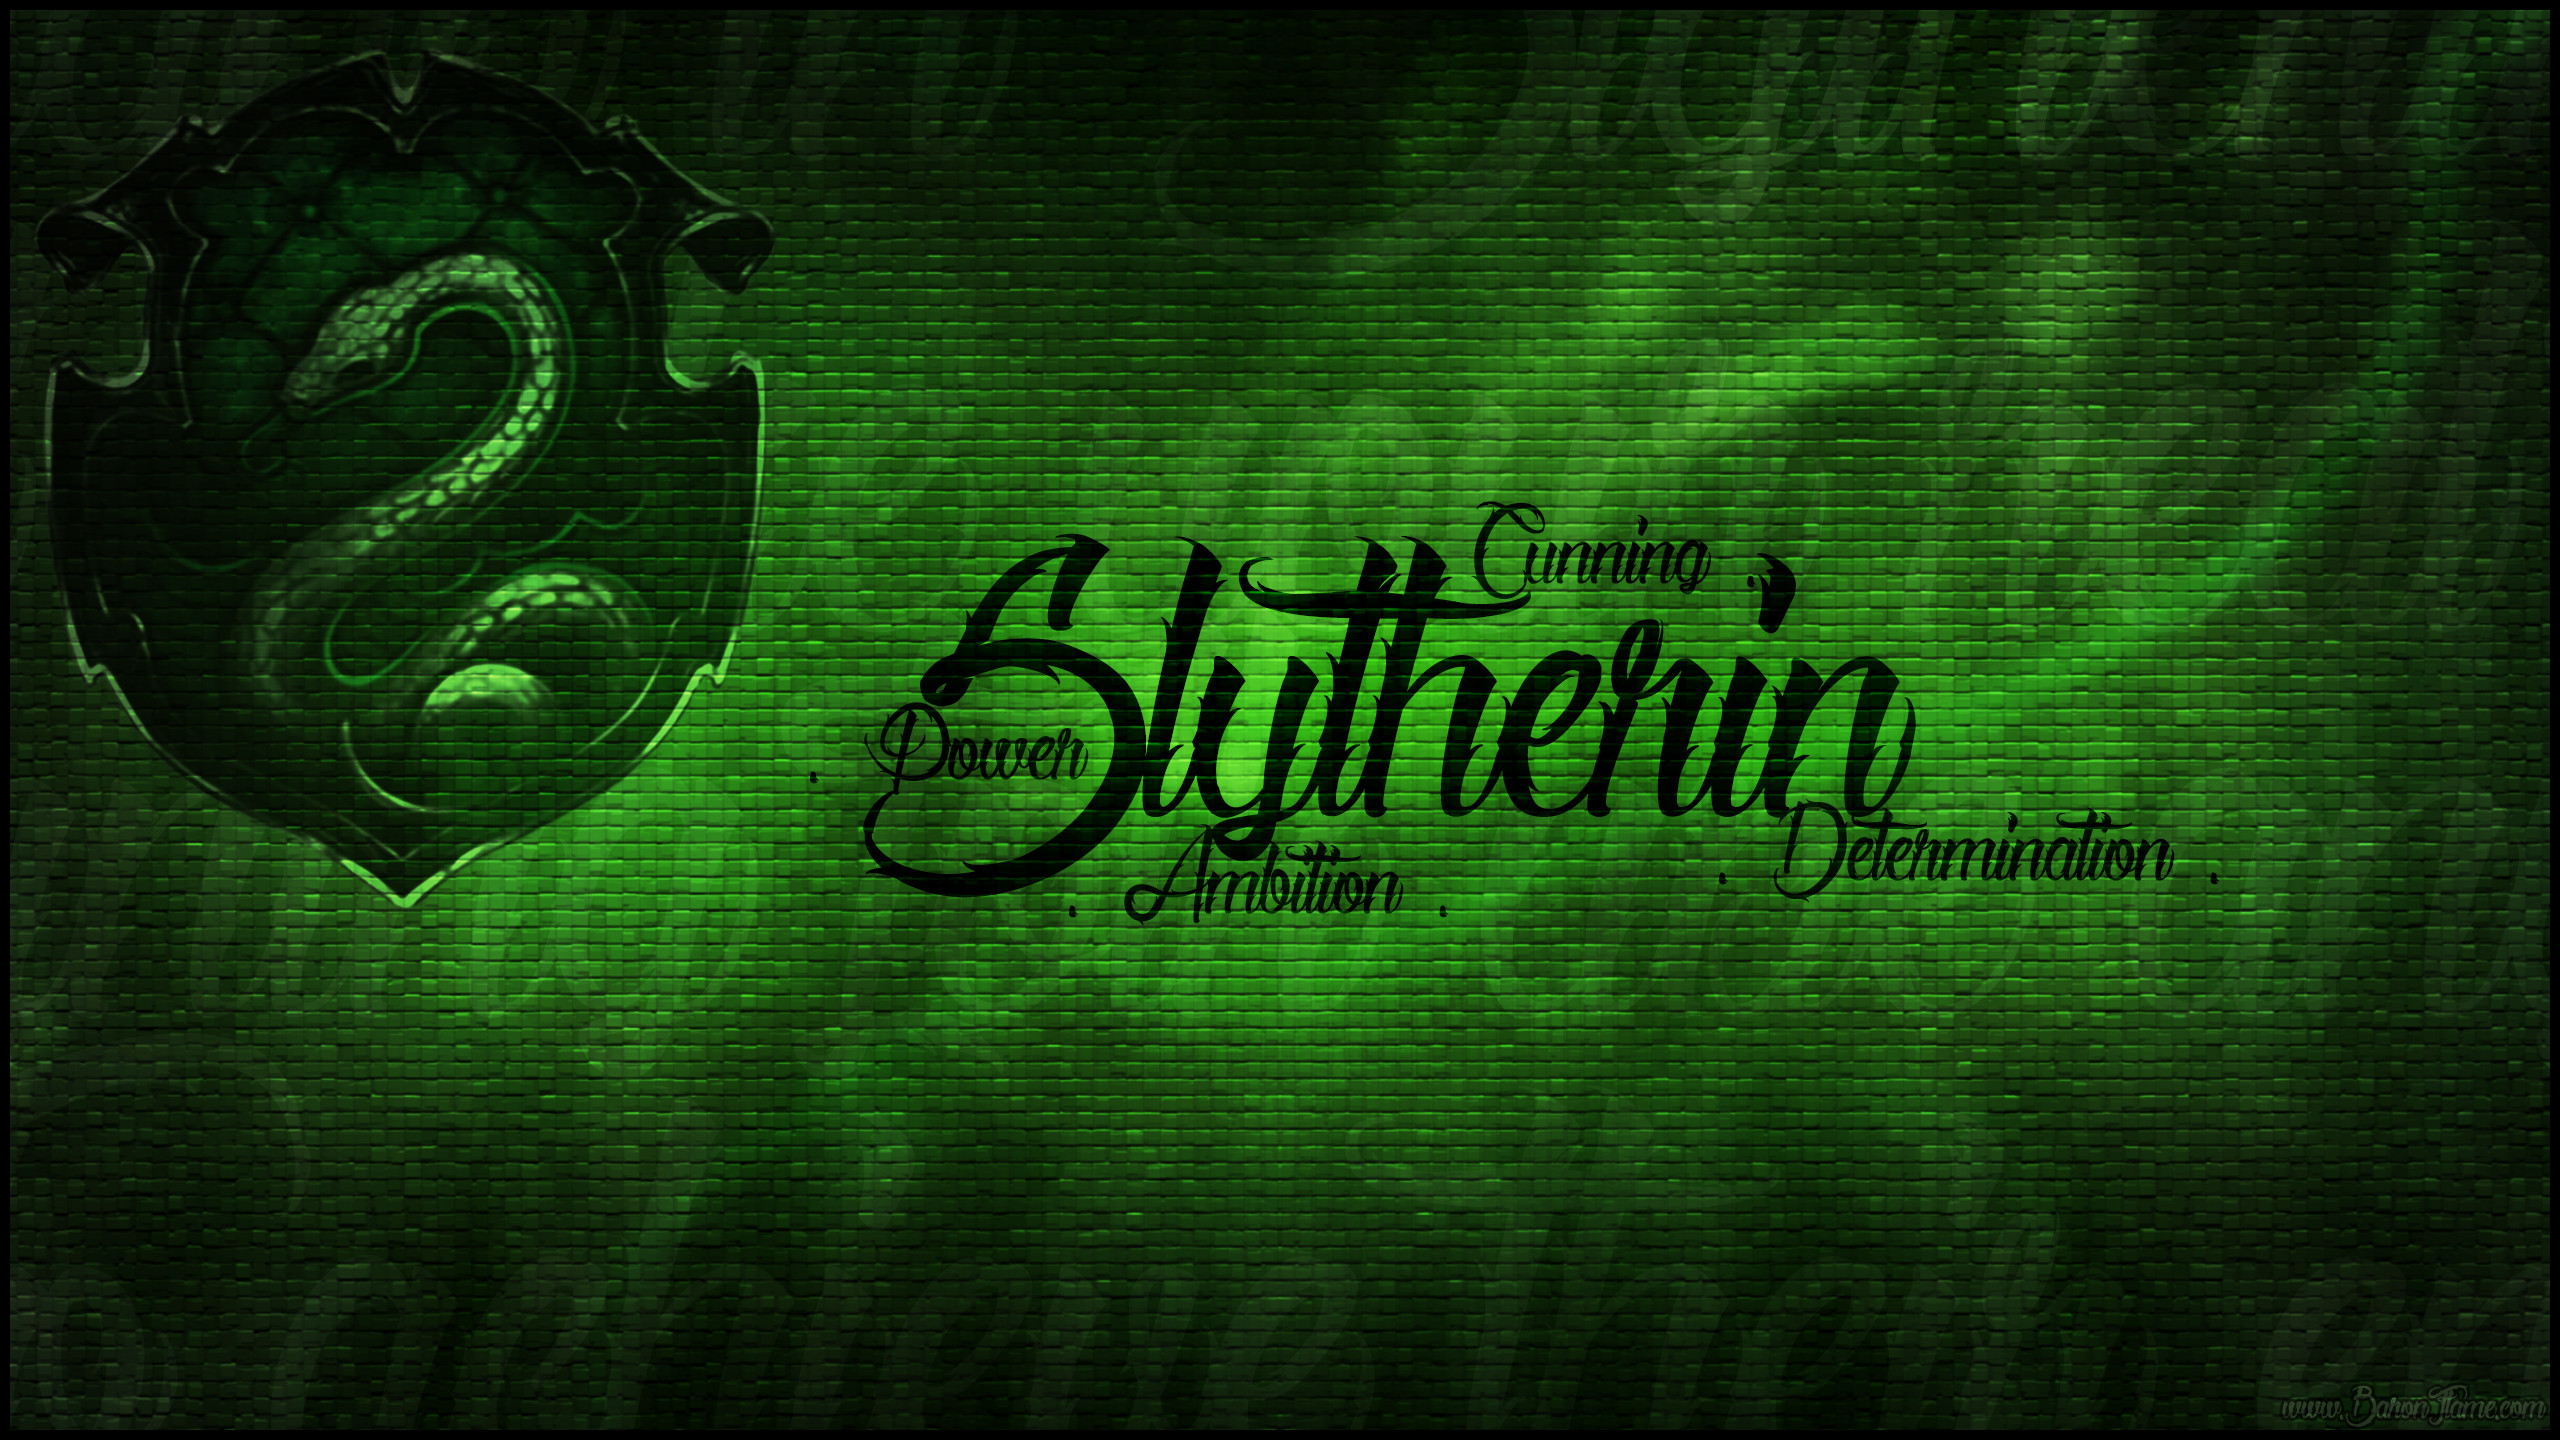 2560x1440 slytherin pride wallpaper by baronflame fan art wallpaper books novels .